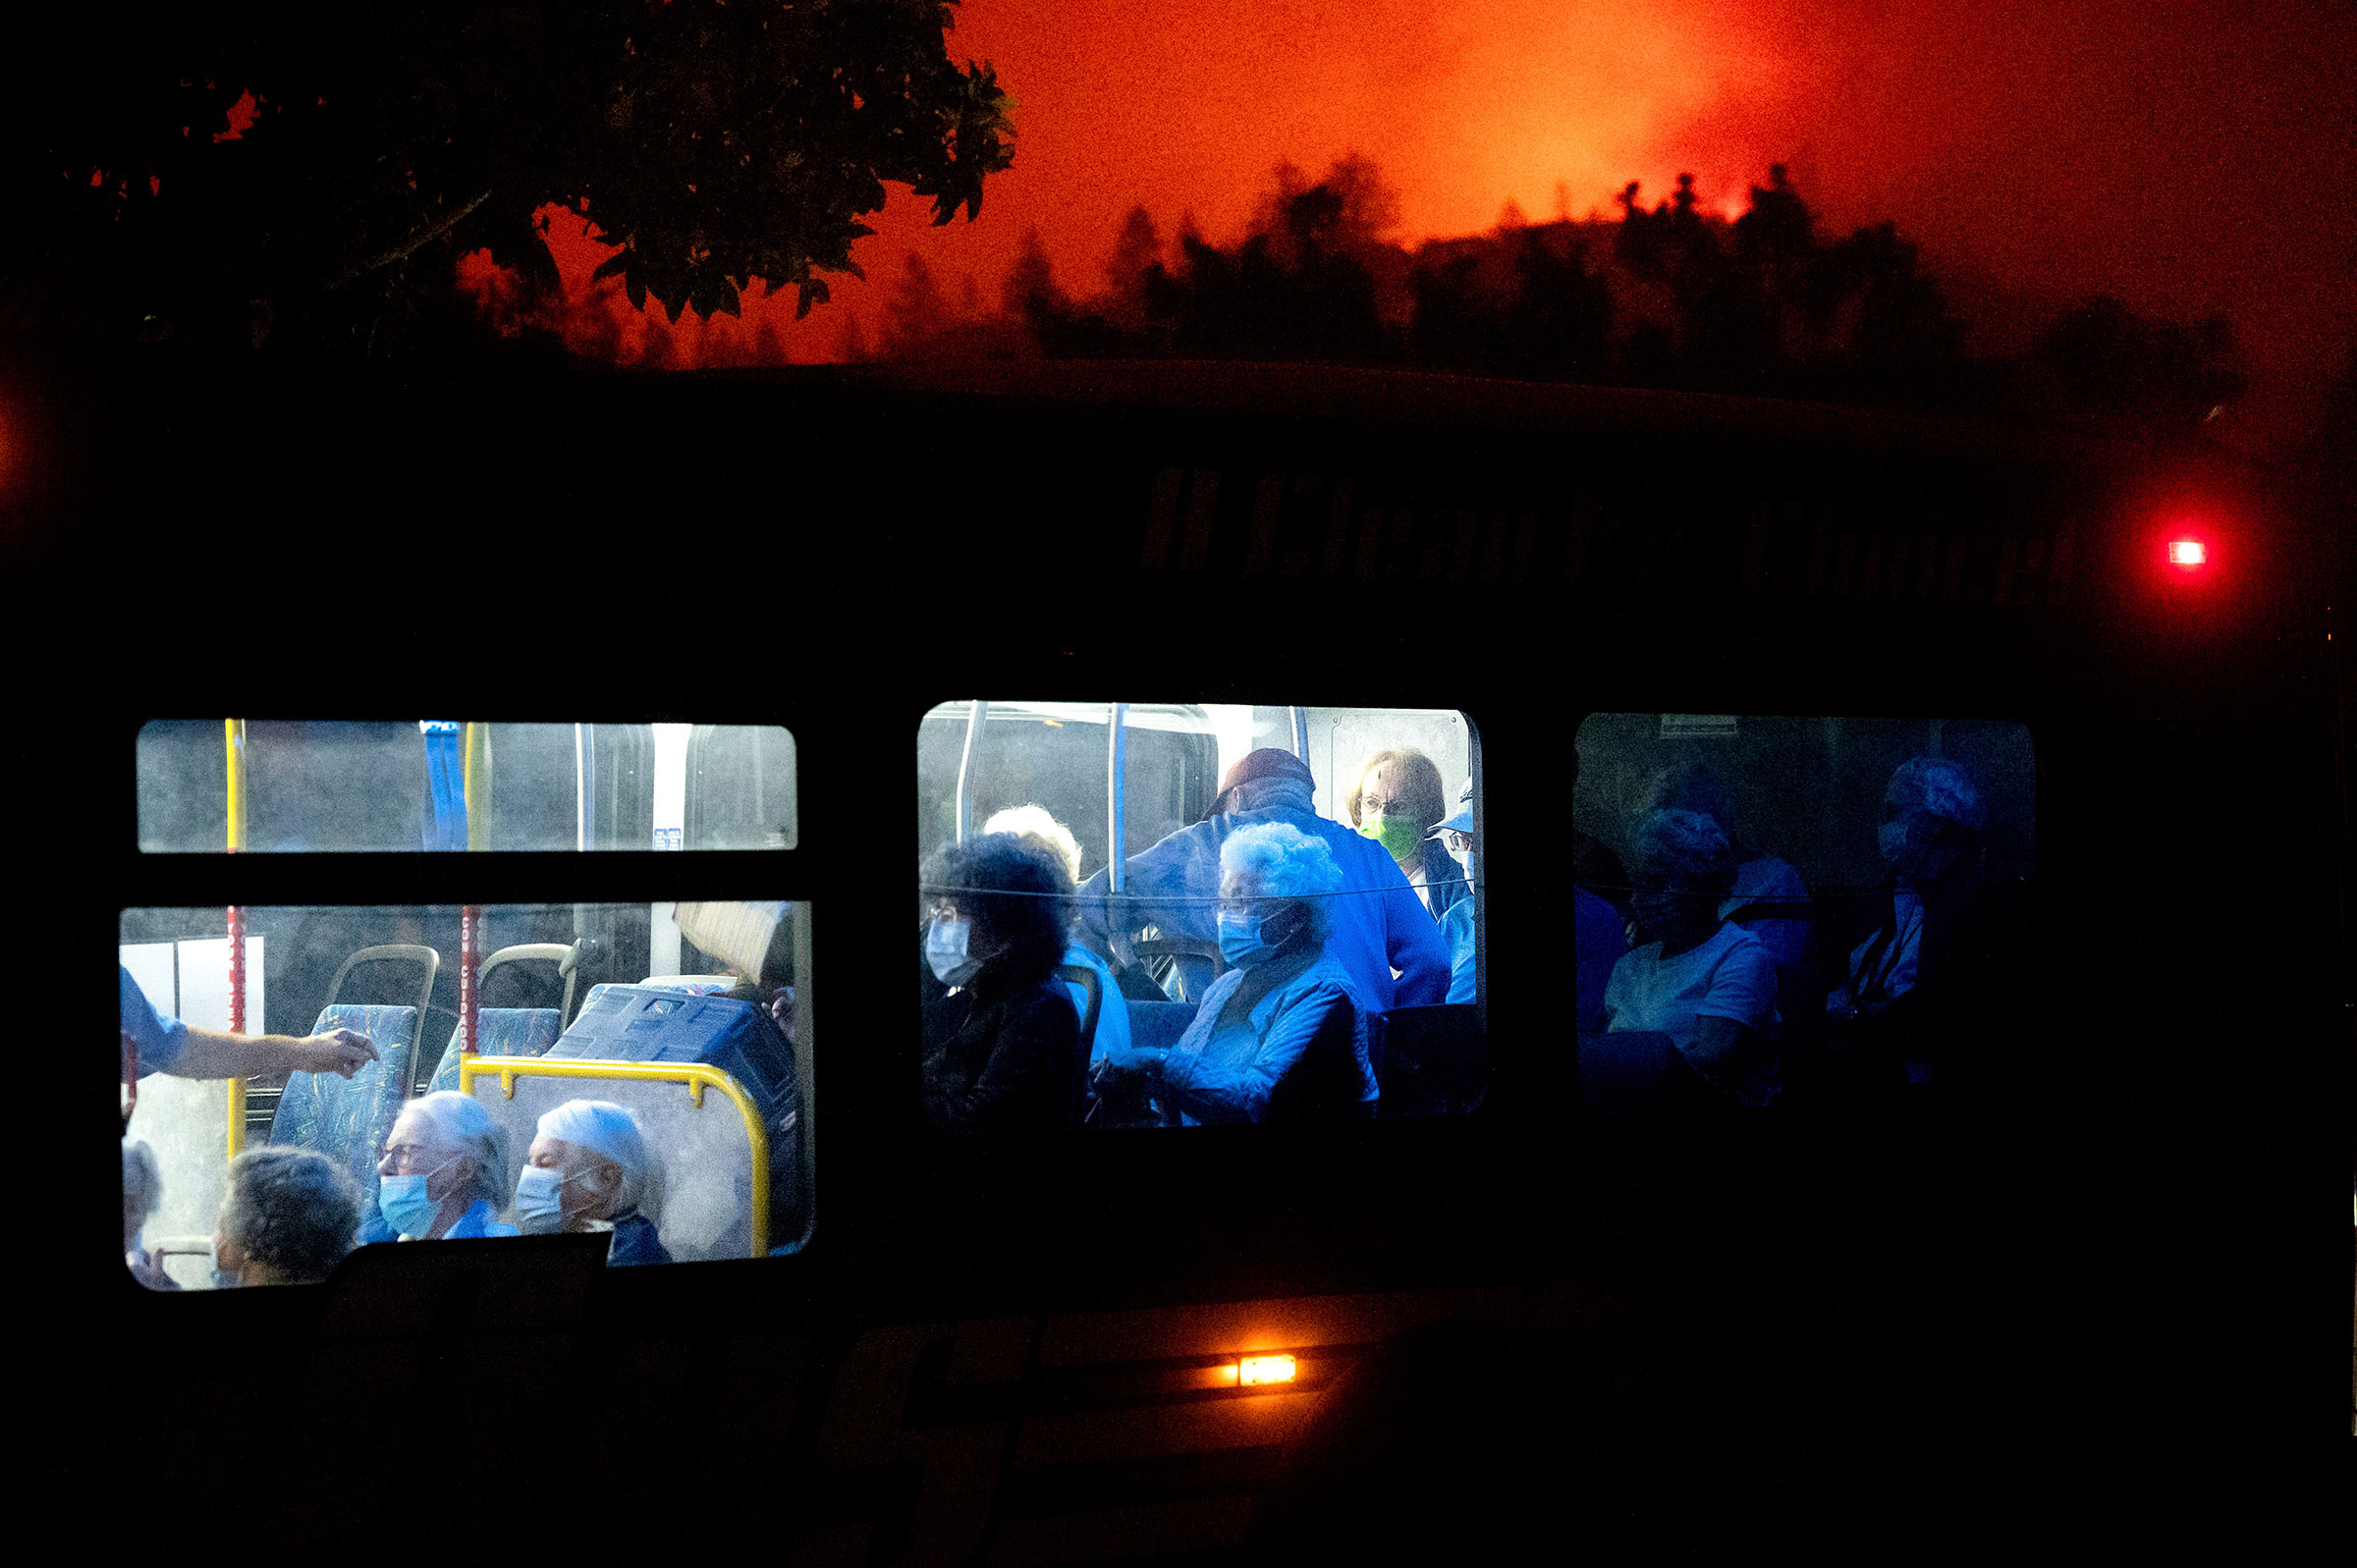 Residents of the Oakmont Gardens senior home evacuate on a bus as the Shady Fire approaches in Santa Rosa Calif., on Sept. 28, 2020.